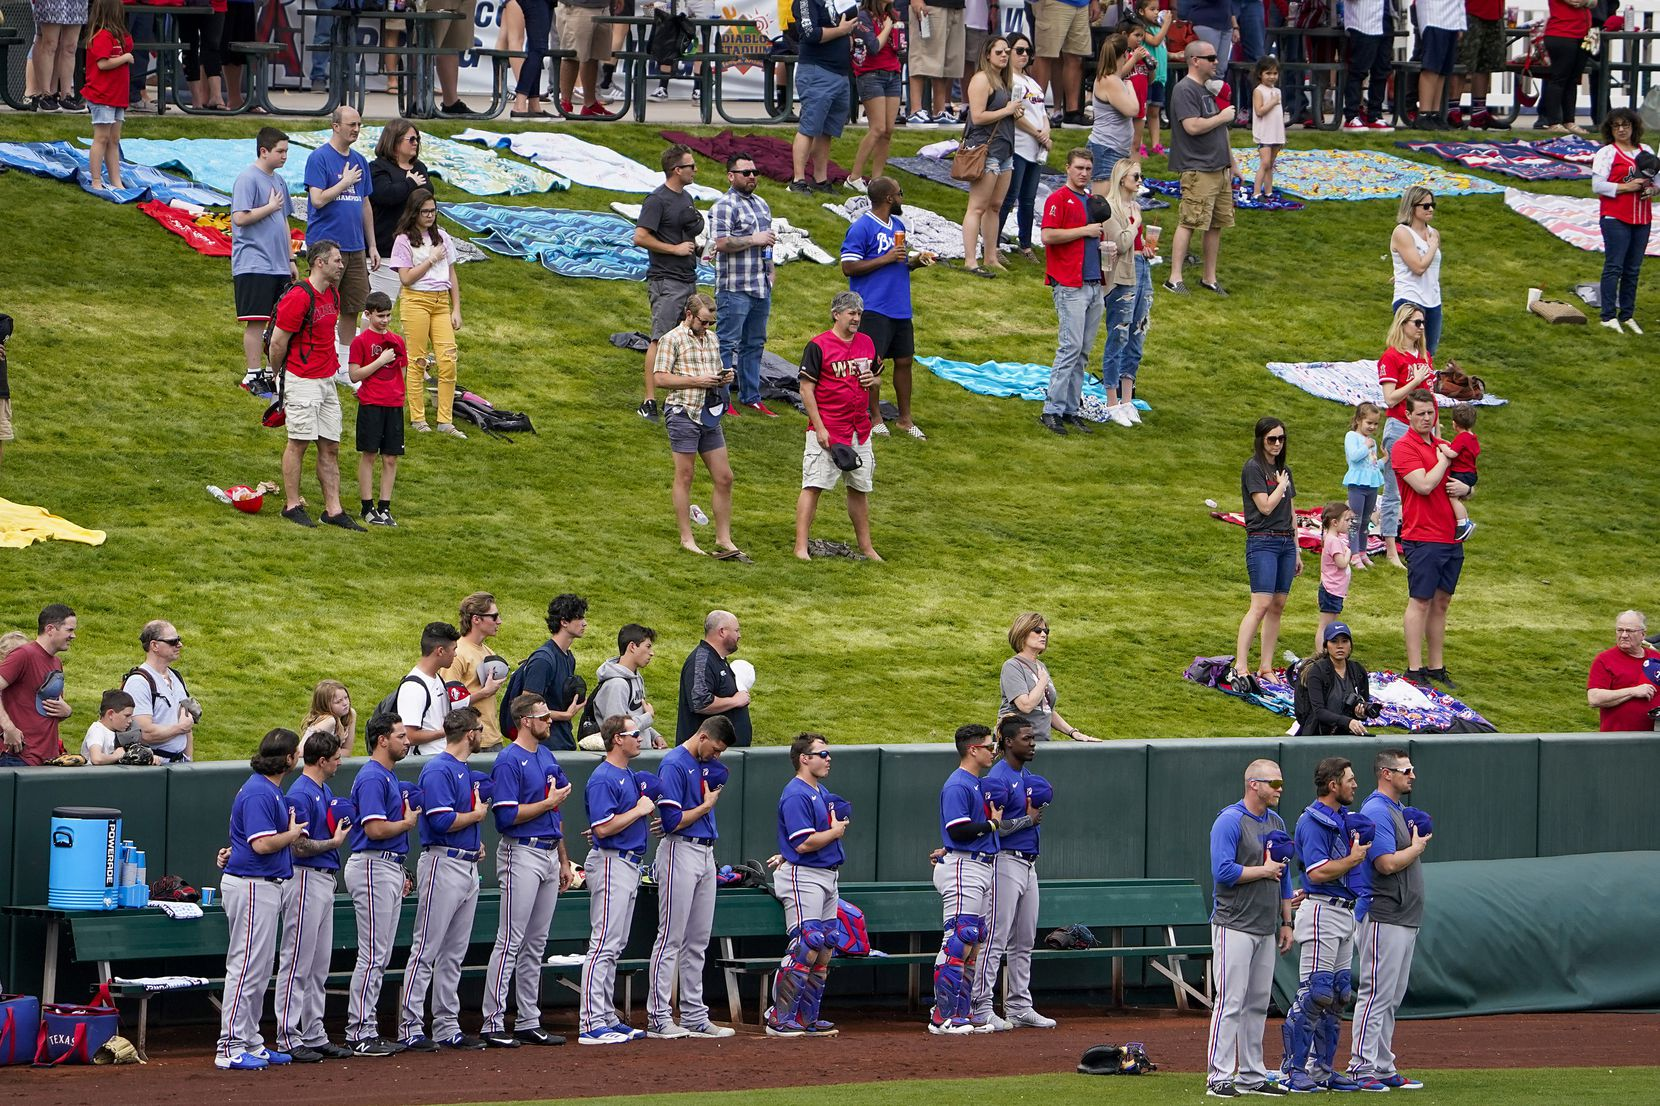 Fans stand along with the Texas Rangers bullpen for the national anthem before a spring training game against the Los Angeles Angels at Tempe Diablo Stadium on Friday, Feb. 28, 2020, in Tempe, Ariz.